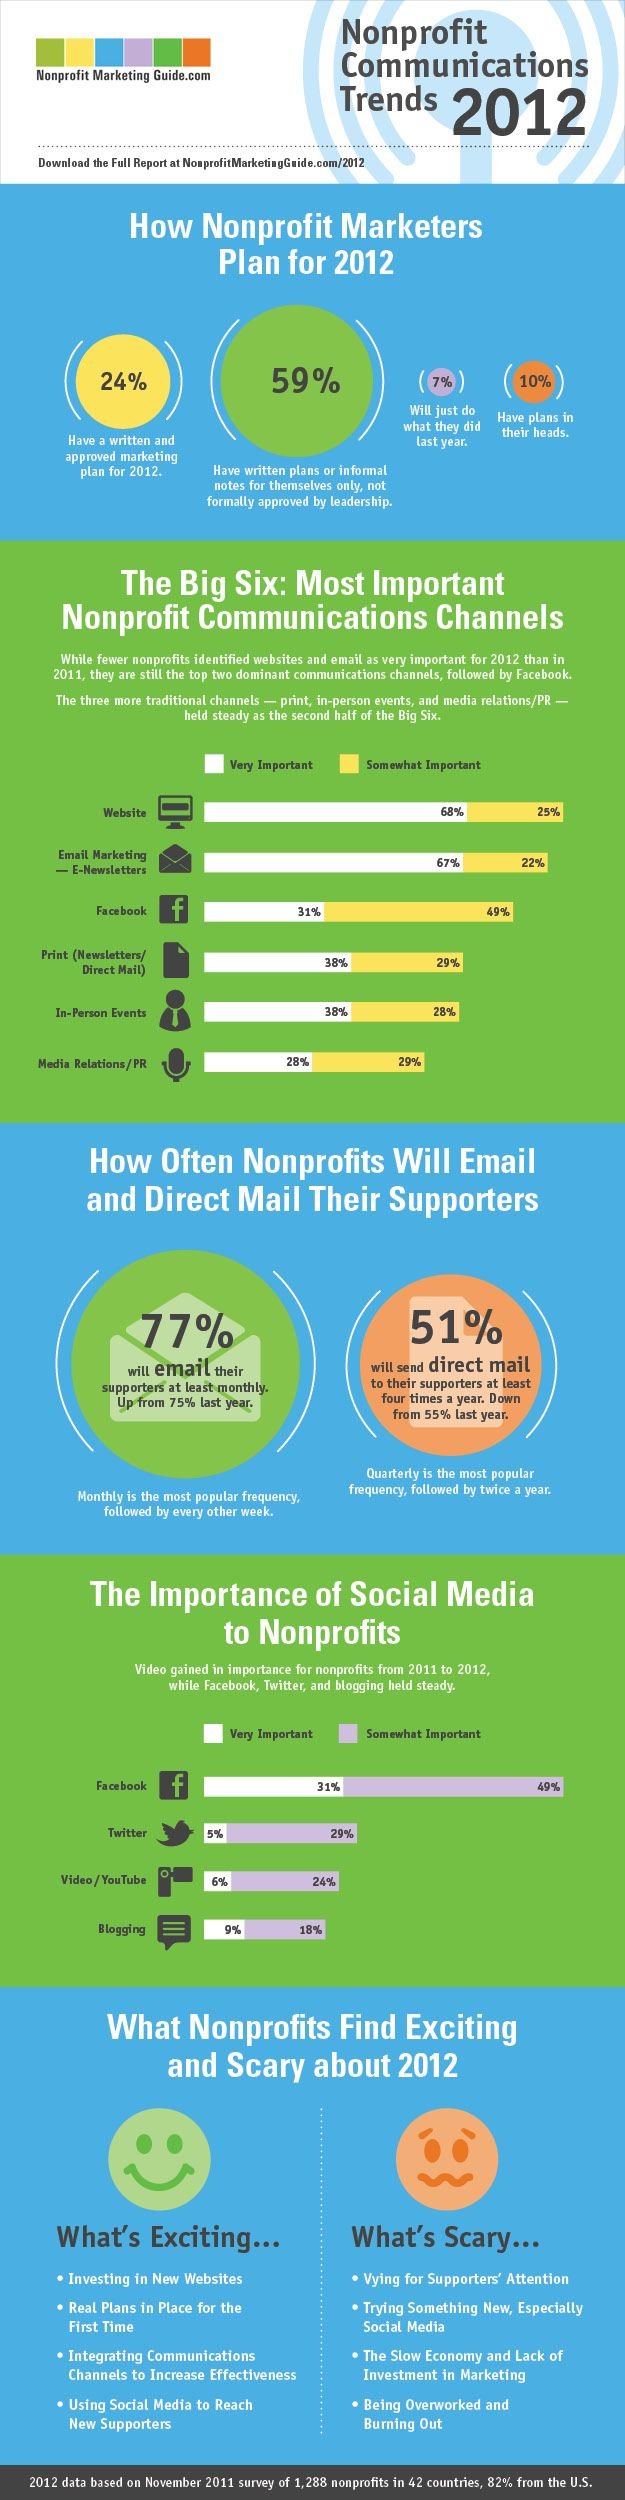 Nonprofit communications trends - so interesting to compare ourselves to our fellow non-profiteers!